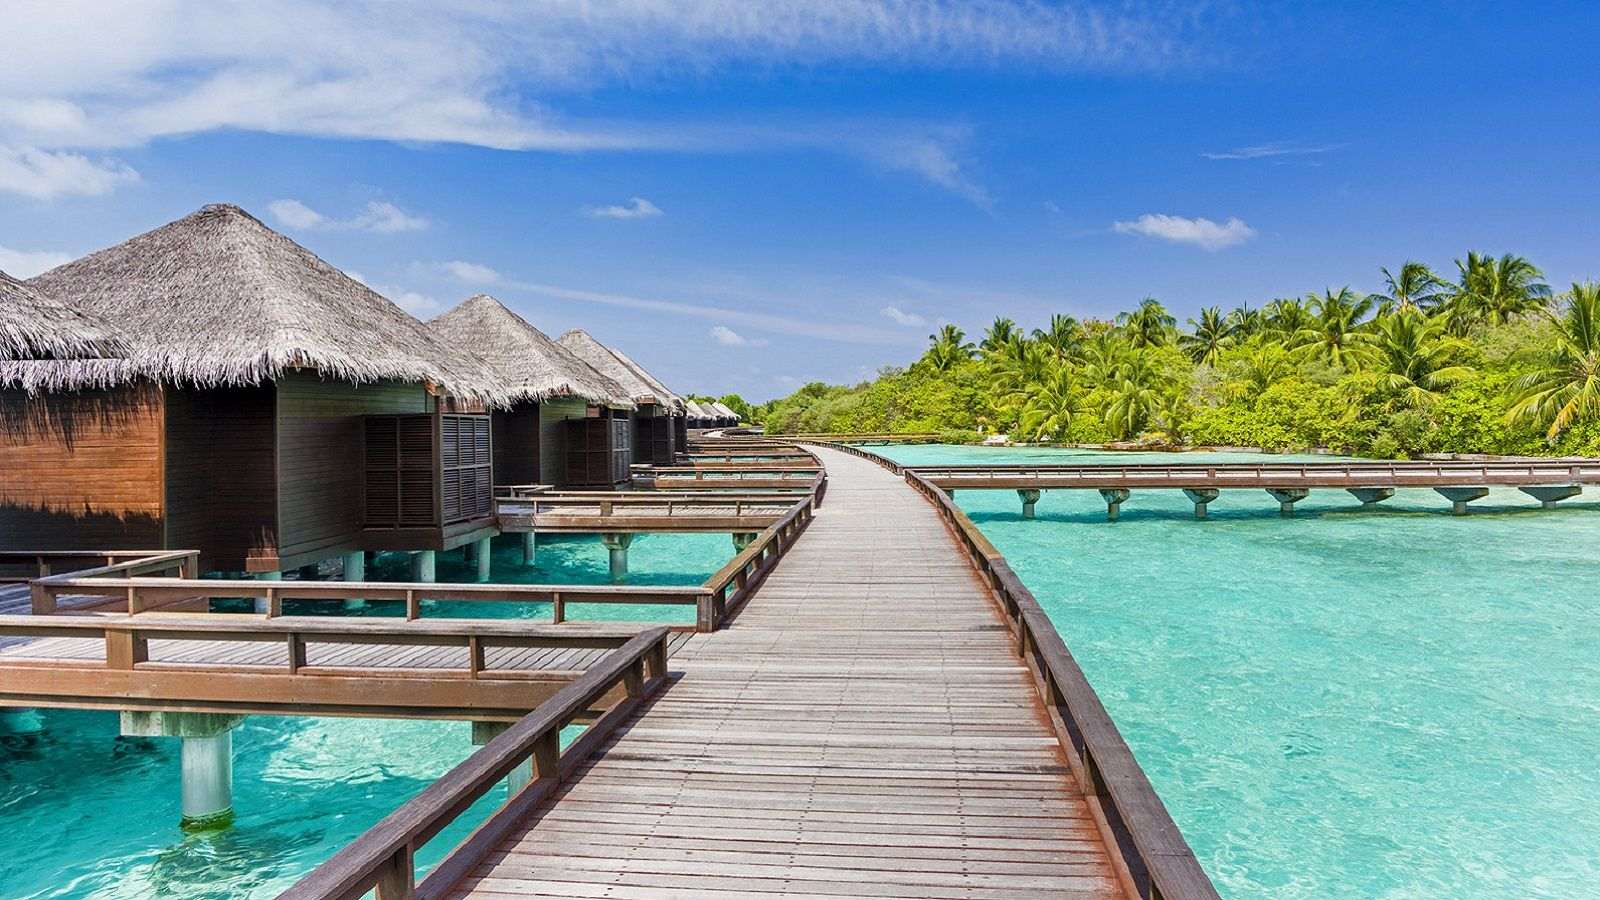 Luxury Pool Villas Maldives: Sheraton Maldives Resort